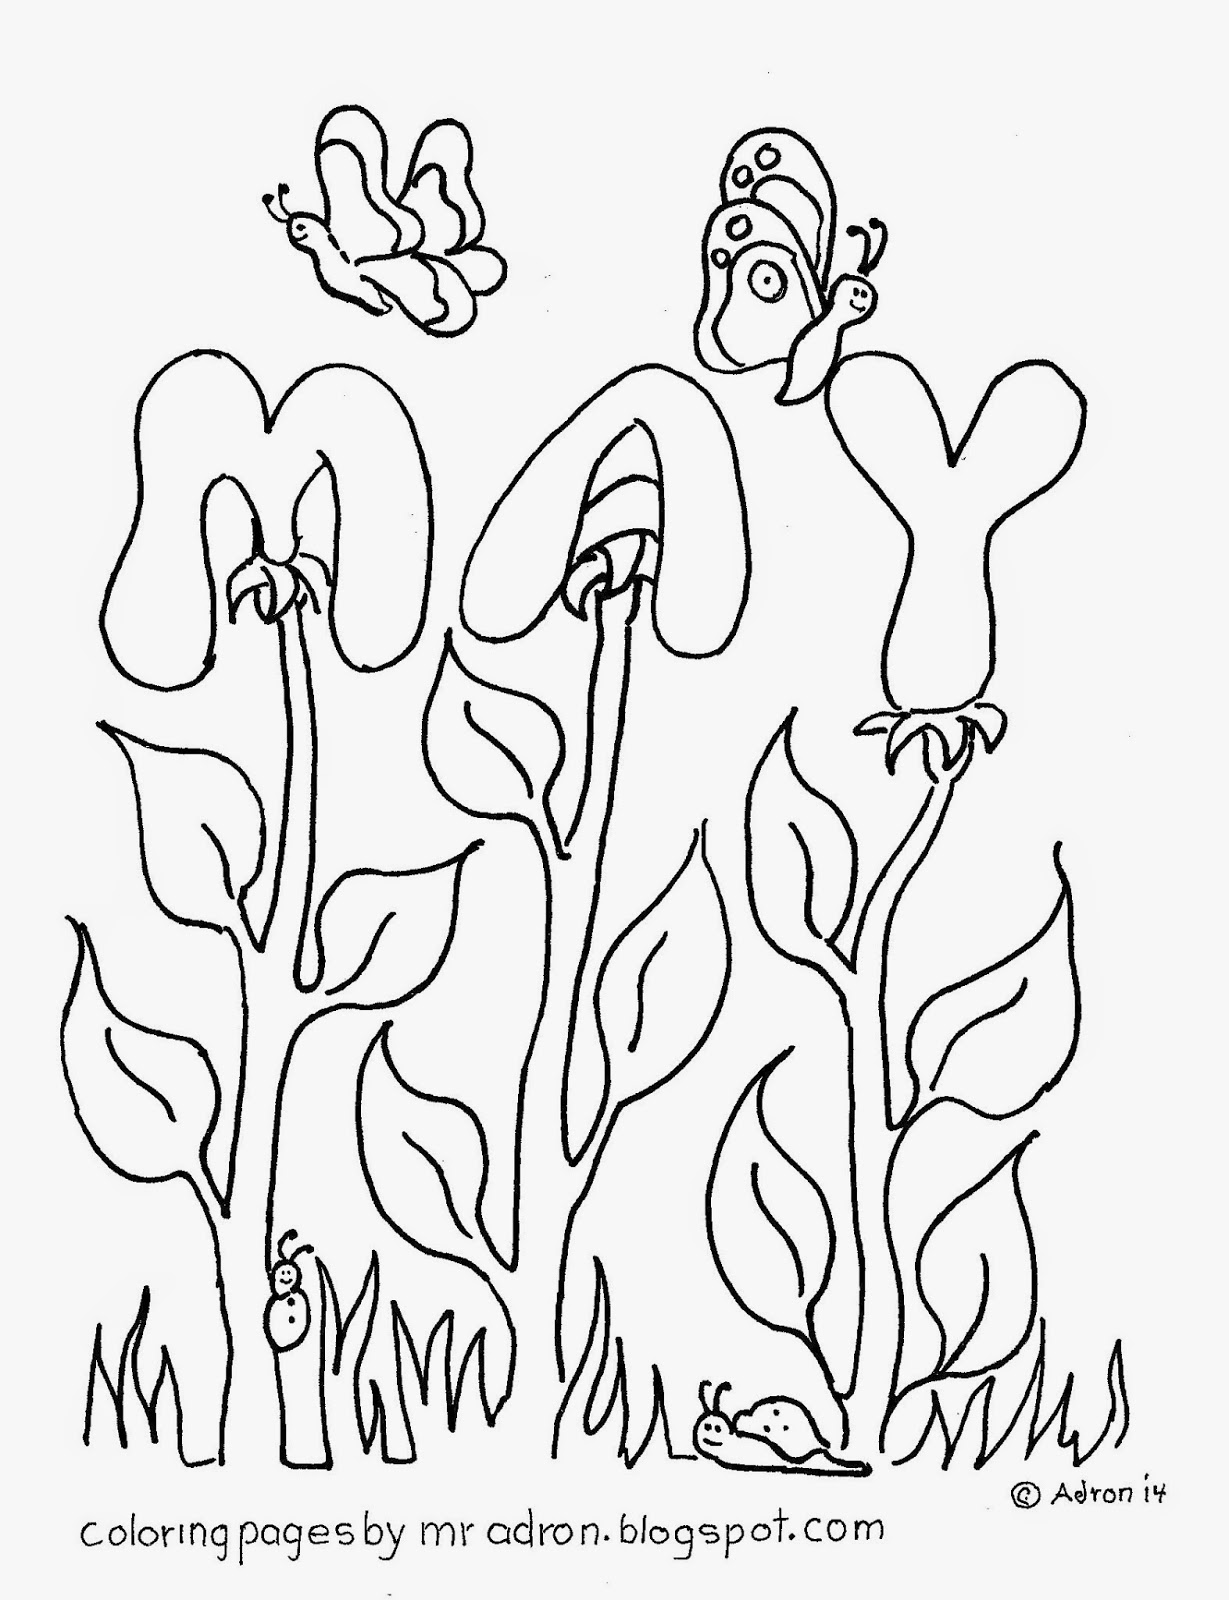 An illustration of the Month of May to print and color.